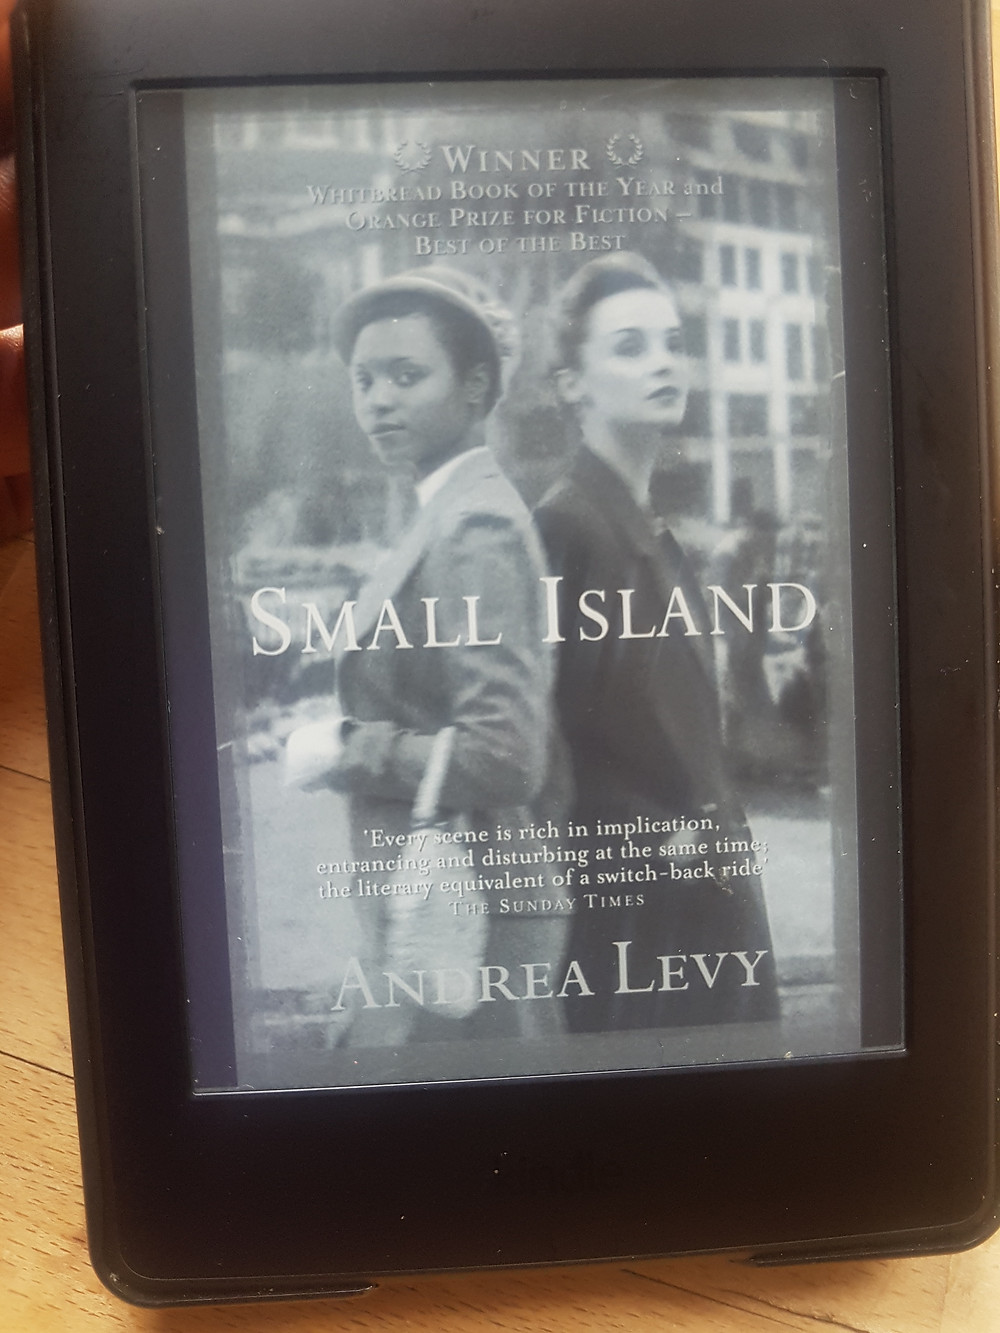 The cover of Small Island by Andrea Levy